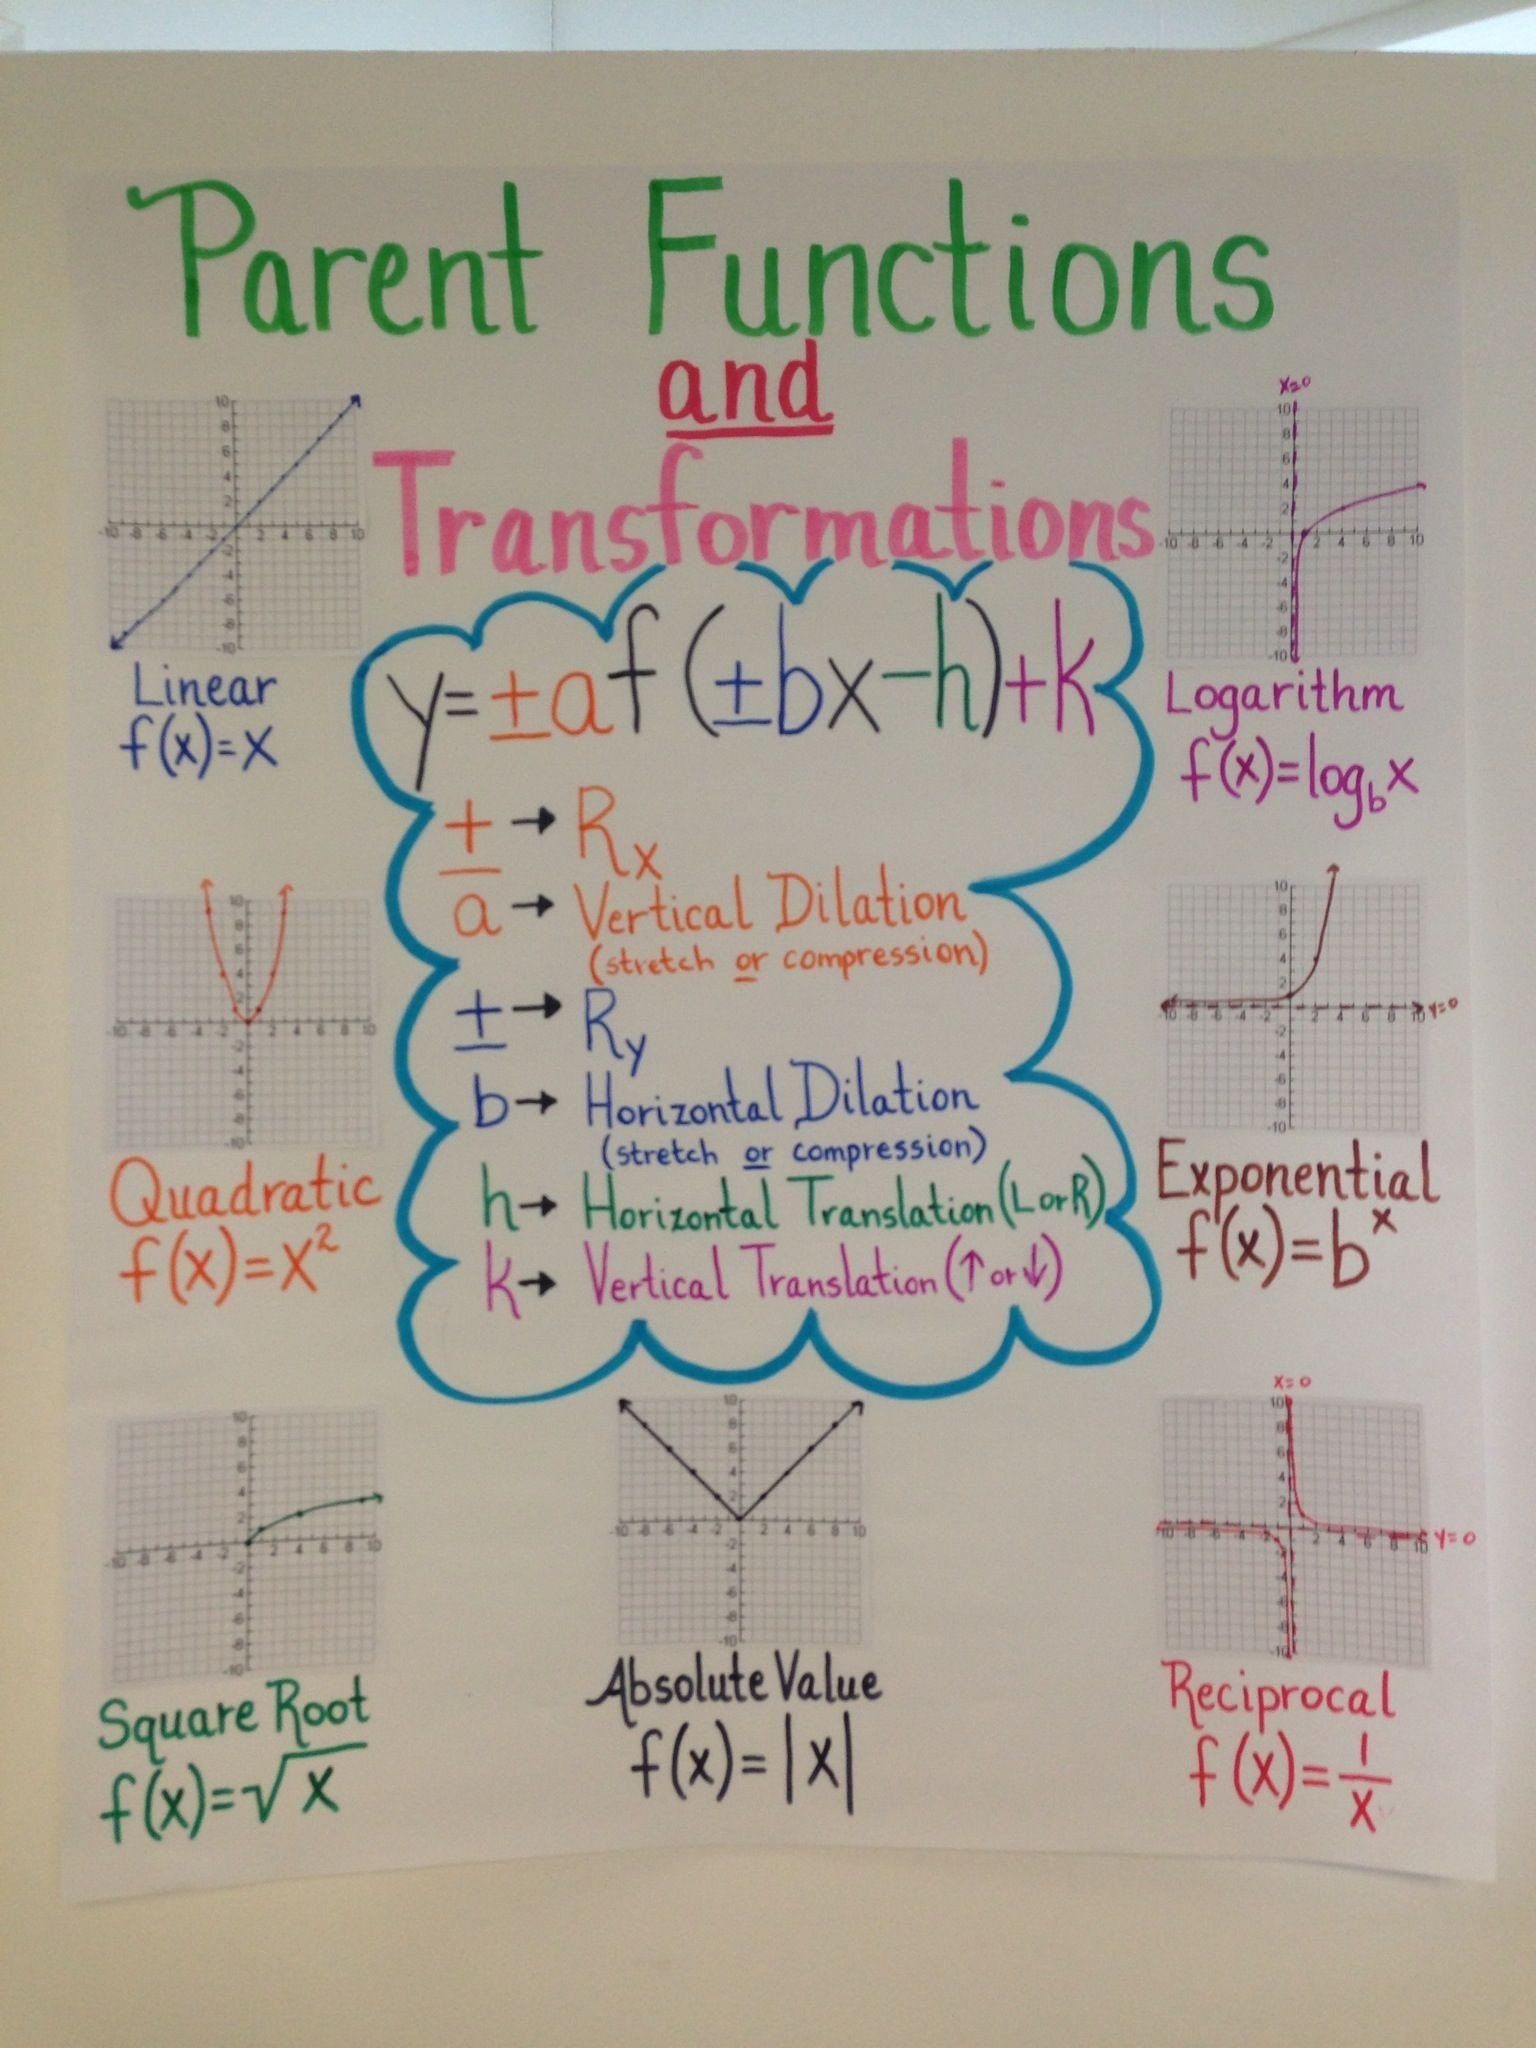 Parent Graphs And Transformations Worksheet Anchor Chart For Algebra Ii Eoc Review On Parent Functions Teaching Algebra School Algebra High School Math